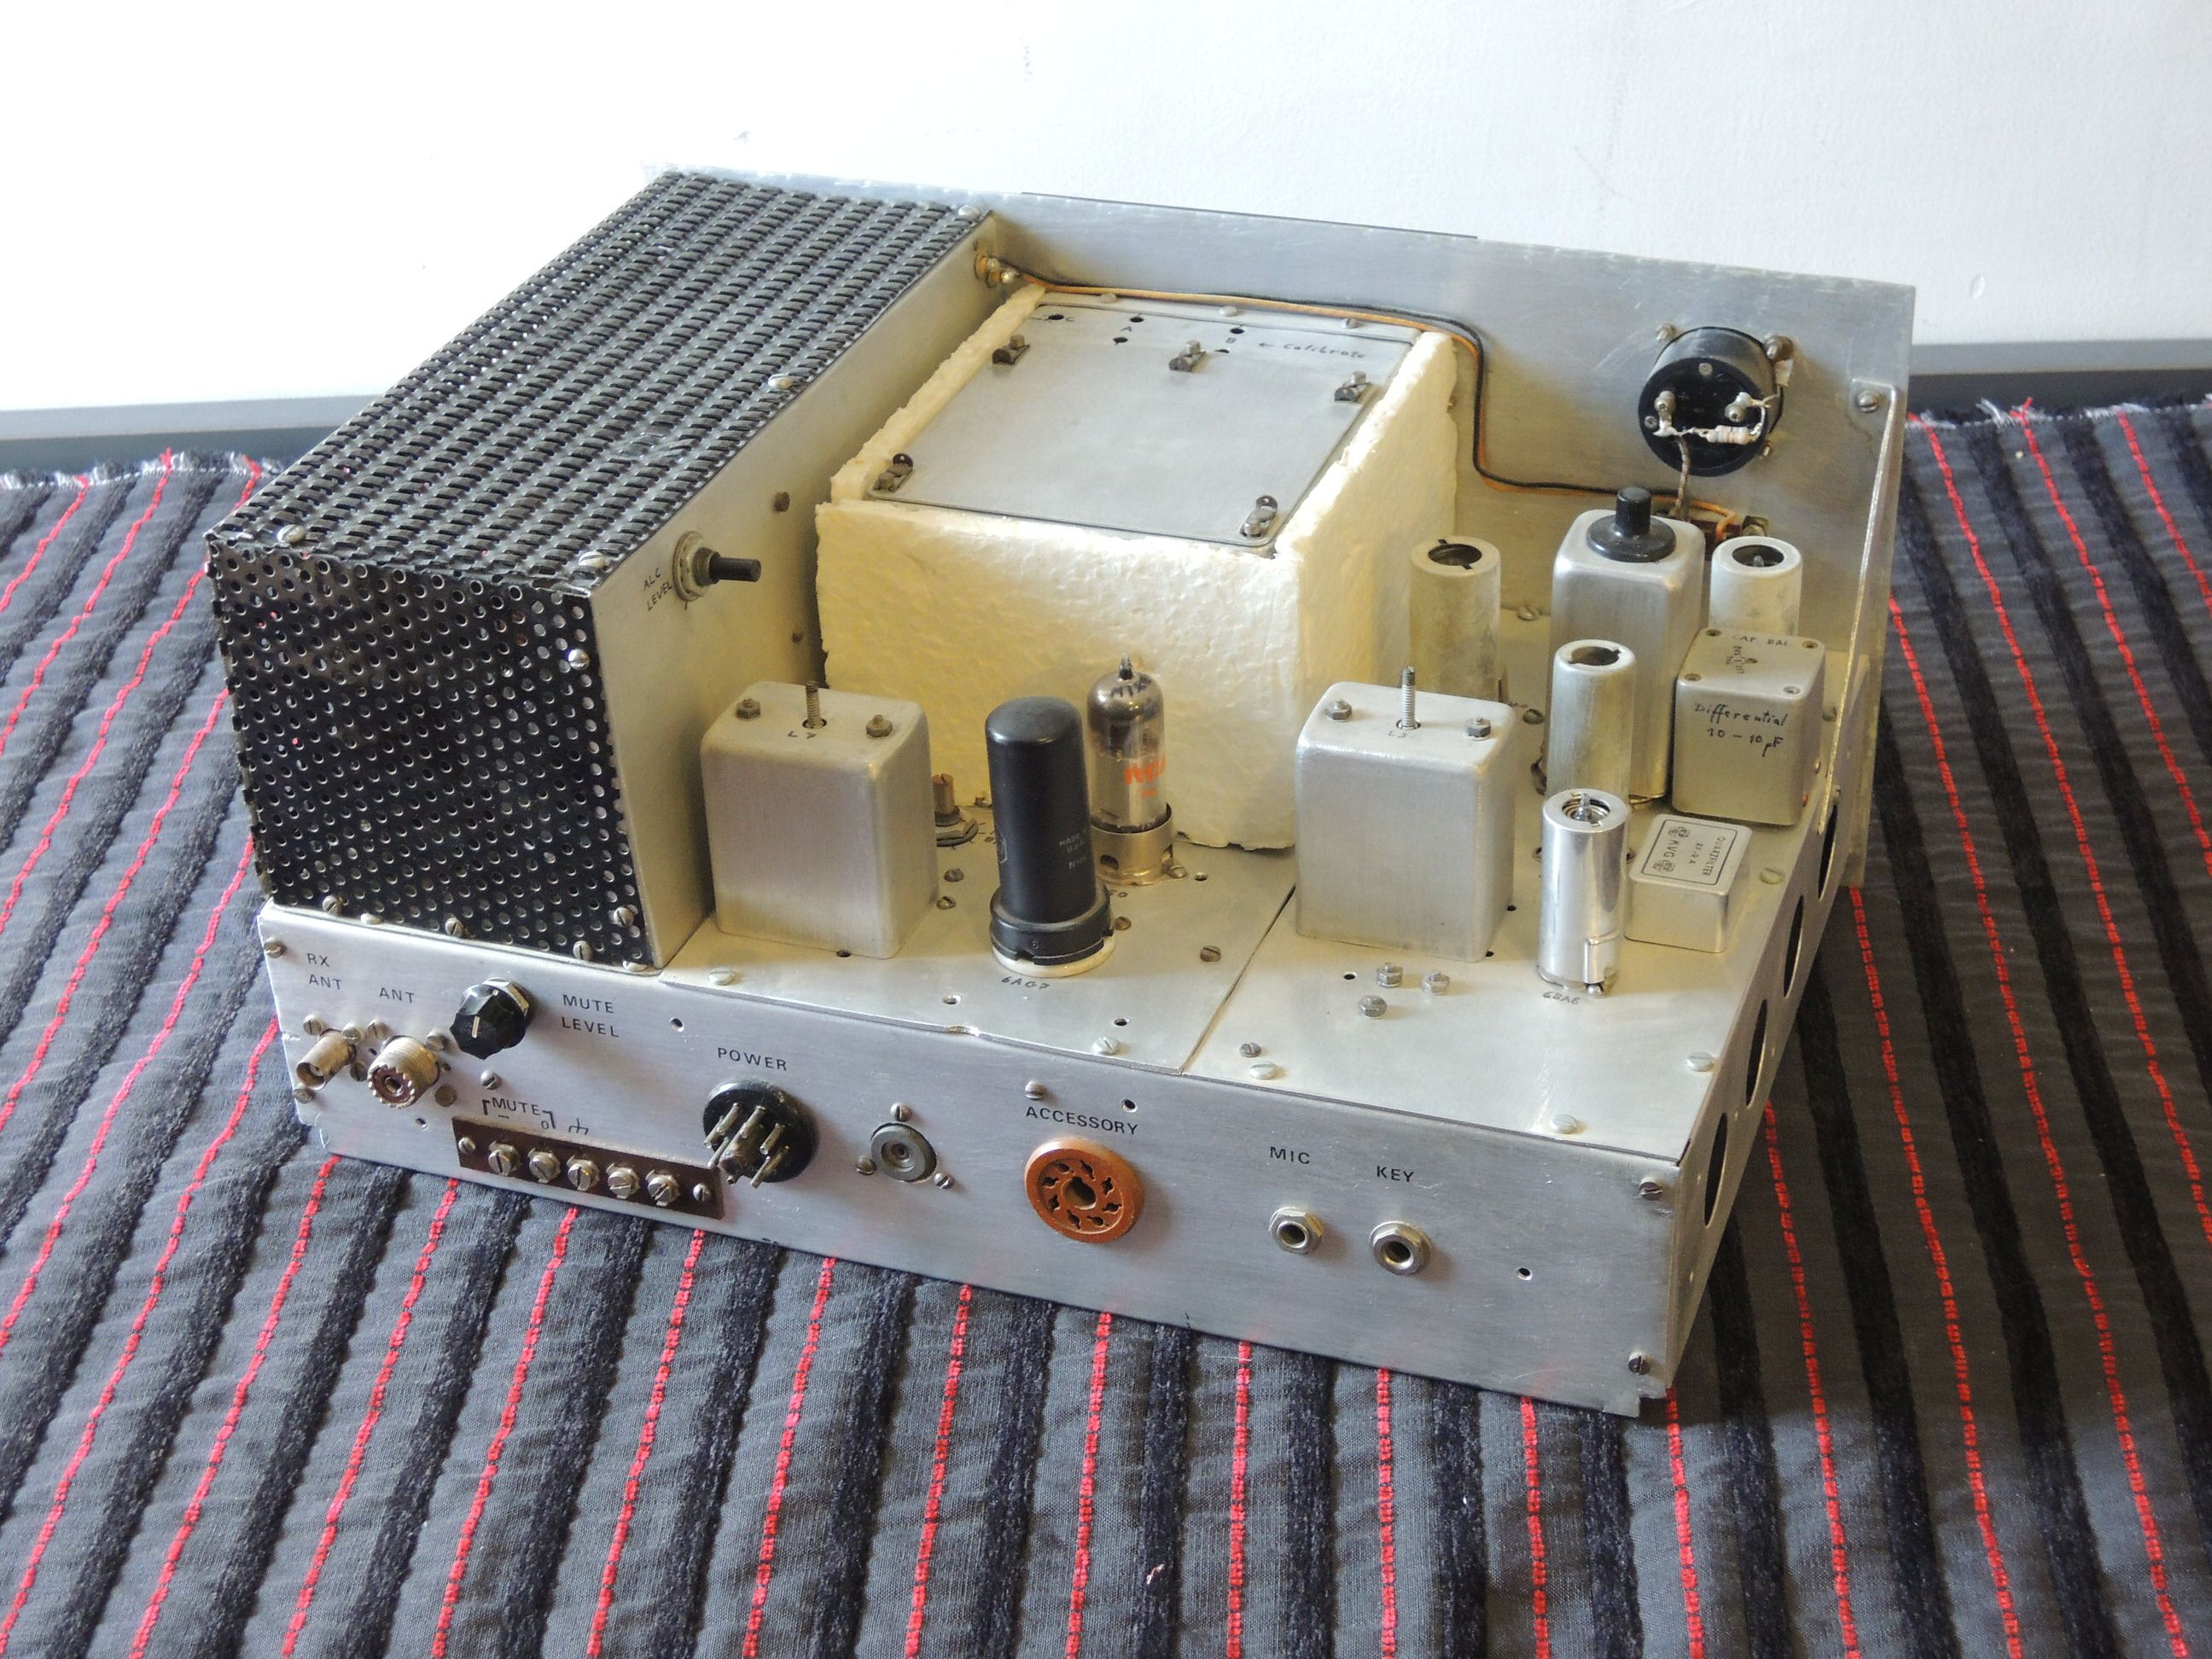 Design And Construction Of A Homebrew Single Sideband Amateur Radio How To Build Simple Am Transmitter Ssb